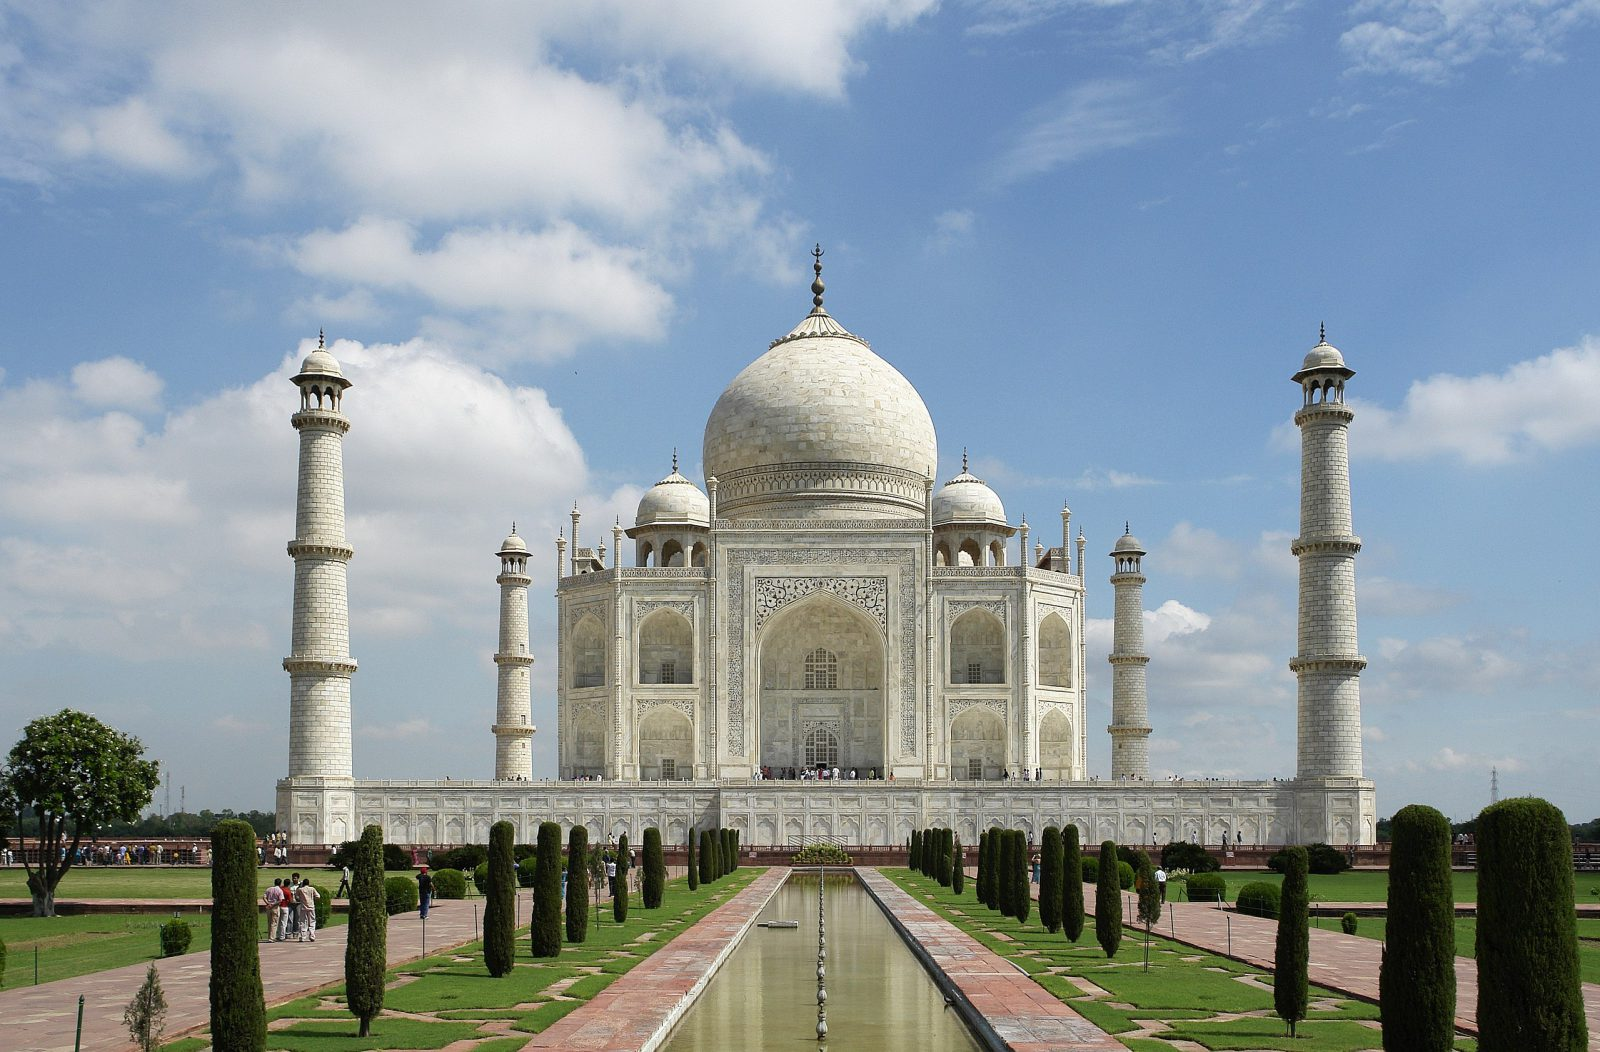 Flight Deal Round Trip From Chicago Area to Delhi #chicago #delhi #usholiday #memorialday